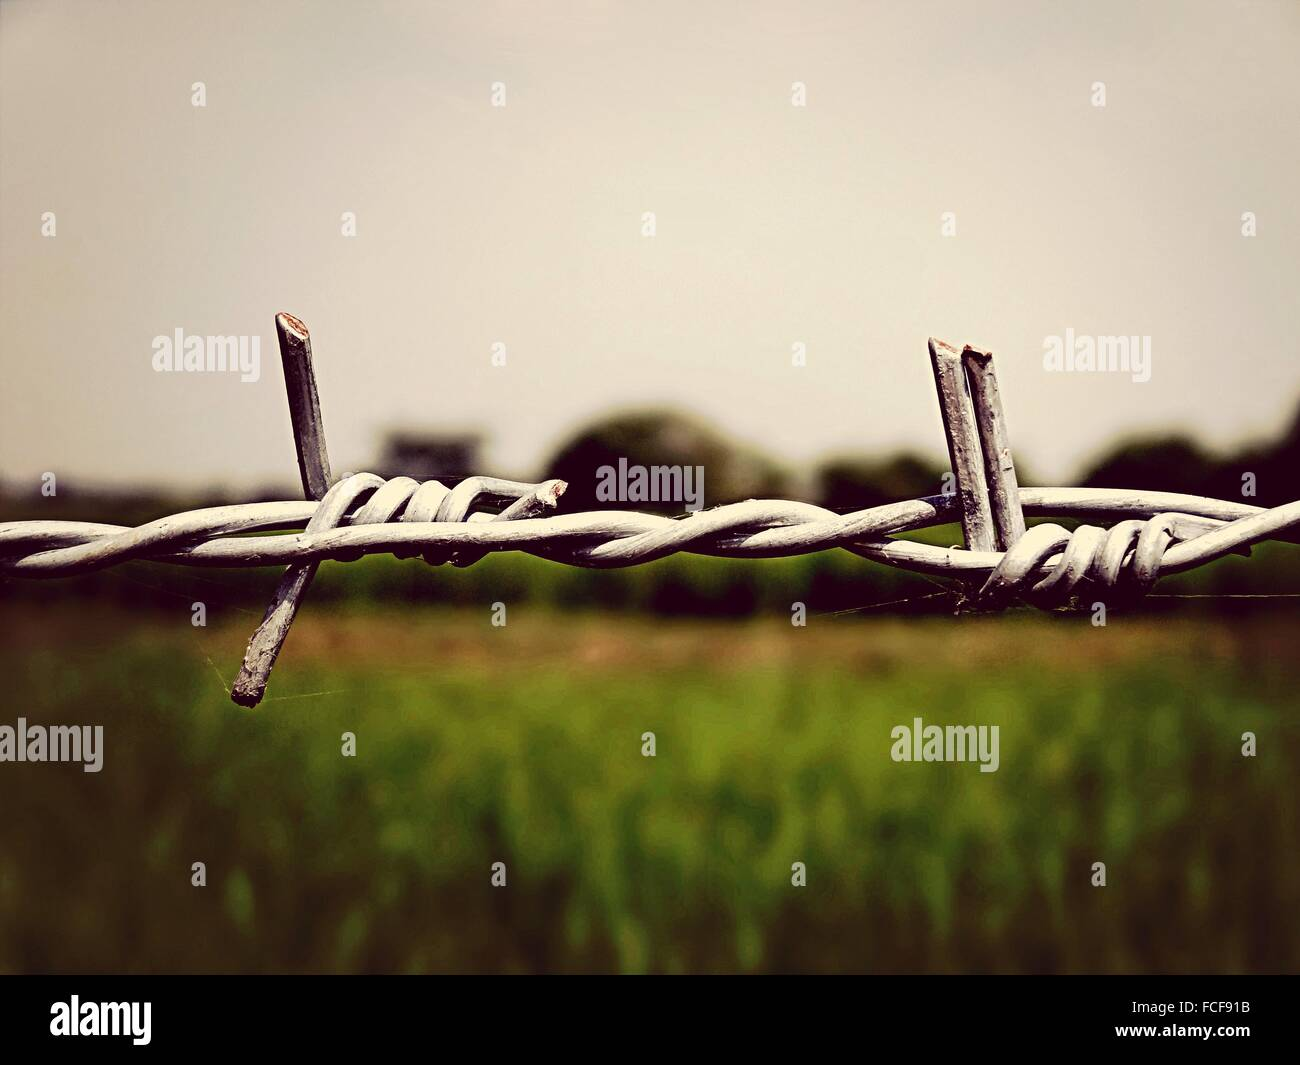 Close-Up Of Barbed Wire Against Field - Stock Image